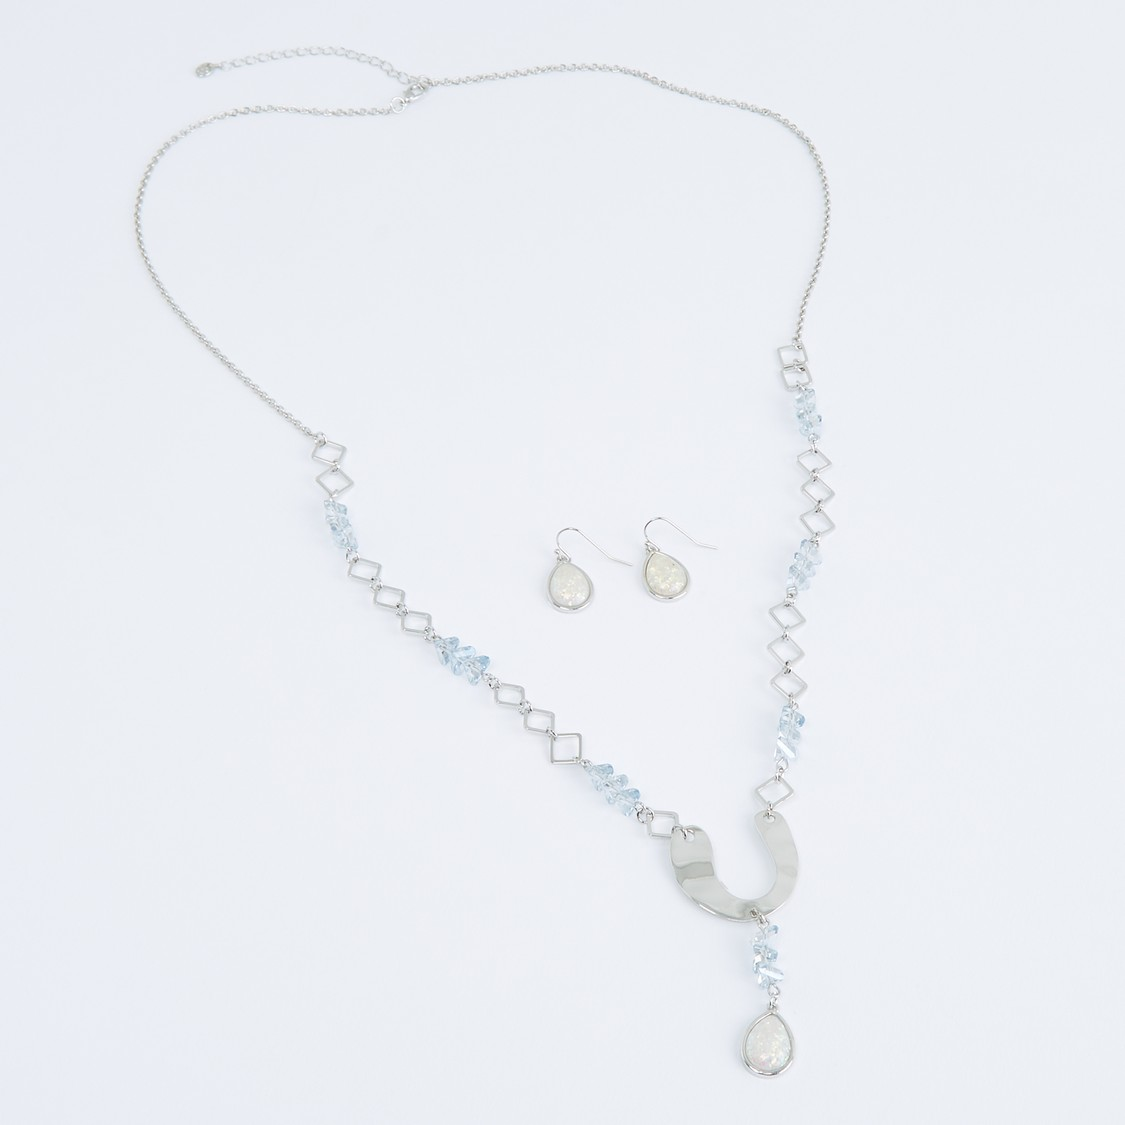 Studded Long Necklace and Earrings Set